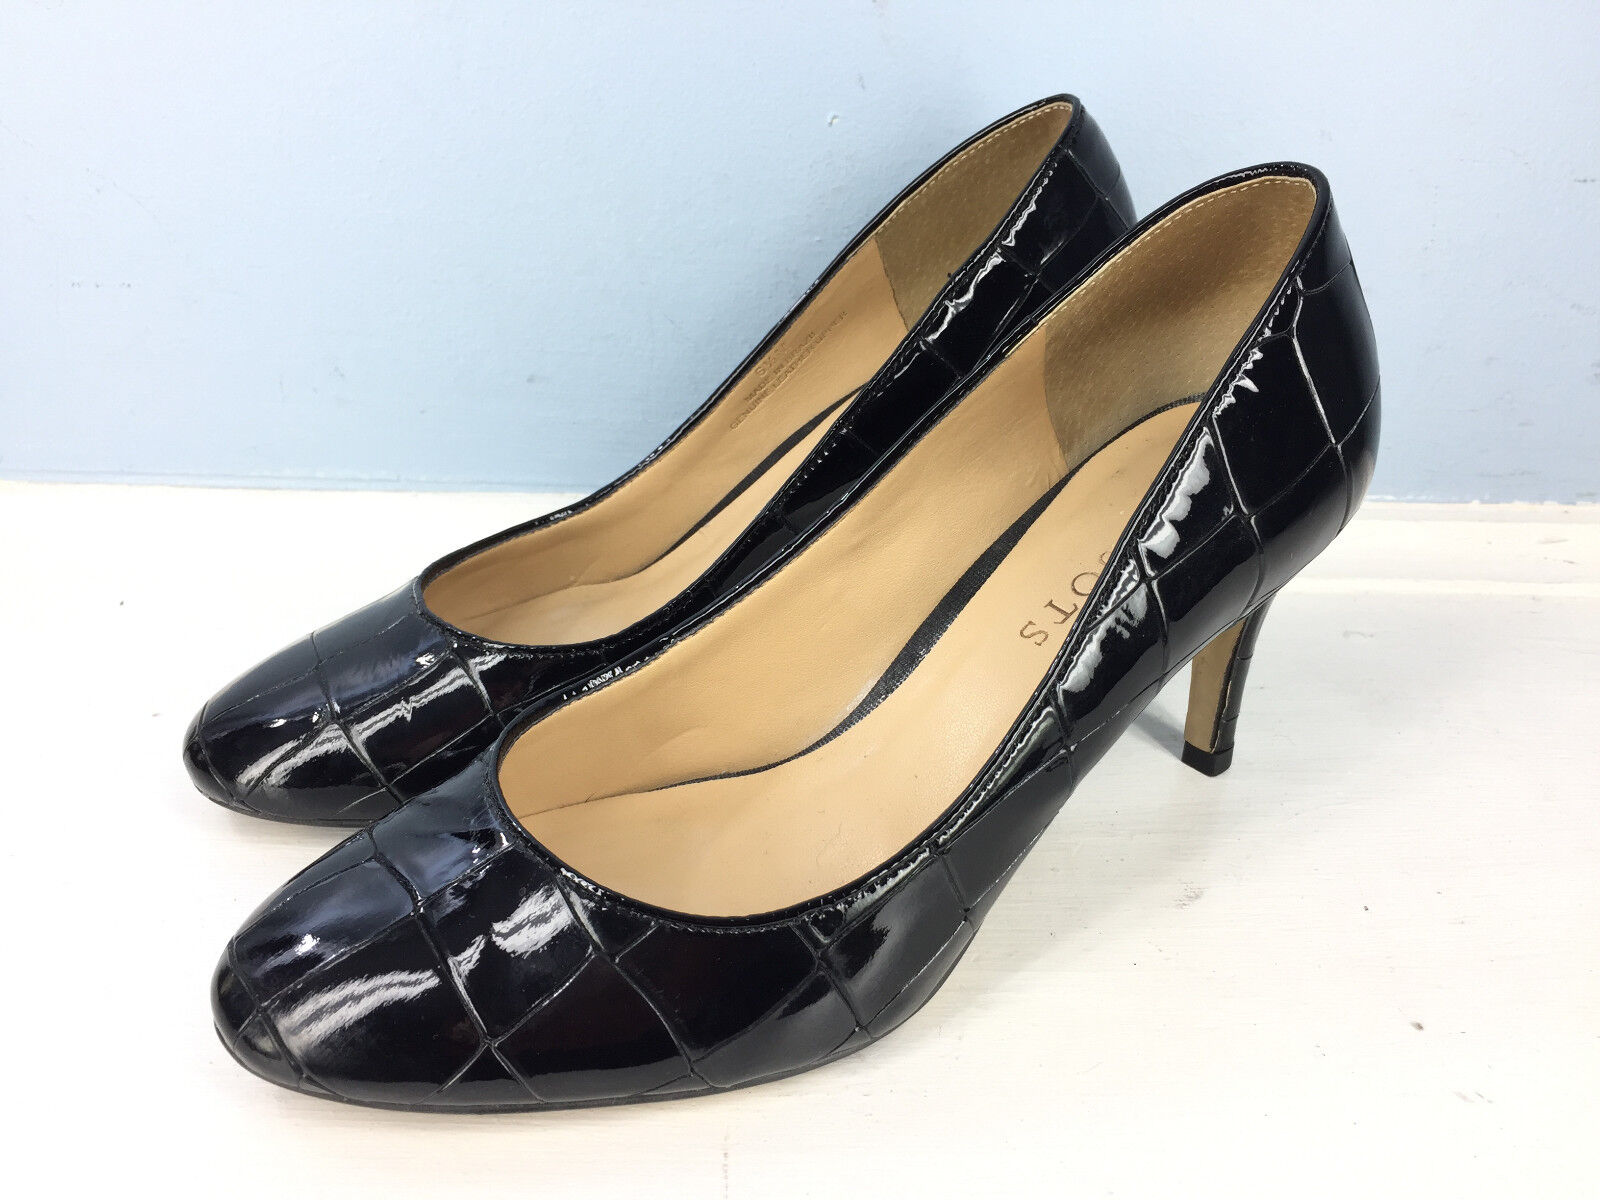 Talbots Black patent Leather Heels High Heels Leather Pumps Career Cocktail Embossed 6.5 M f8e95b